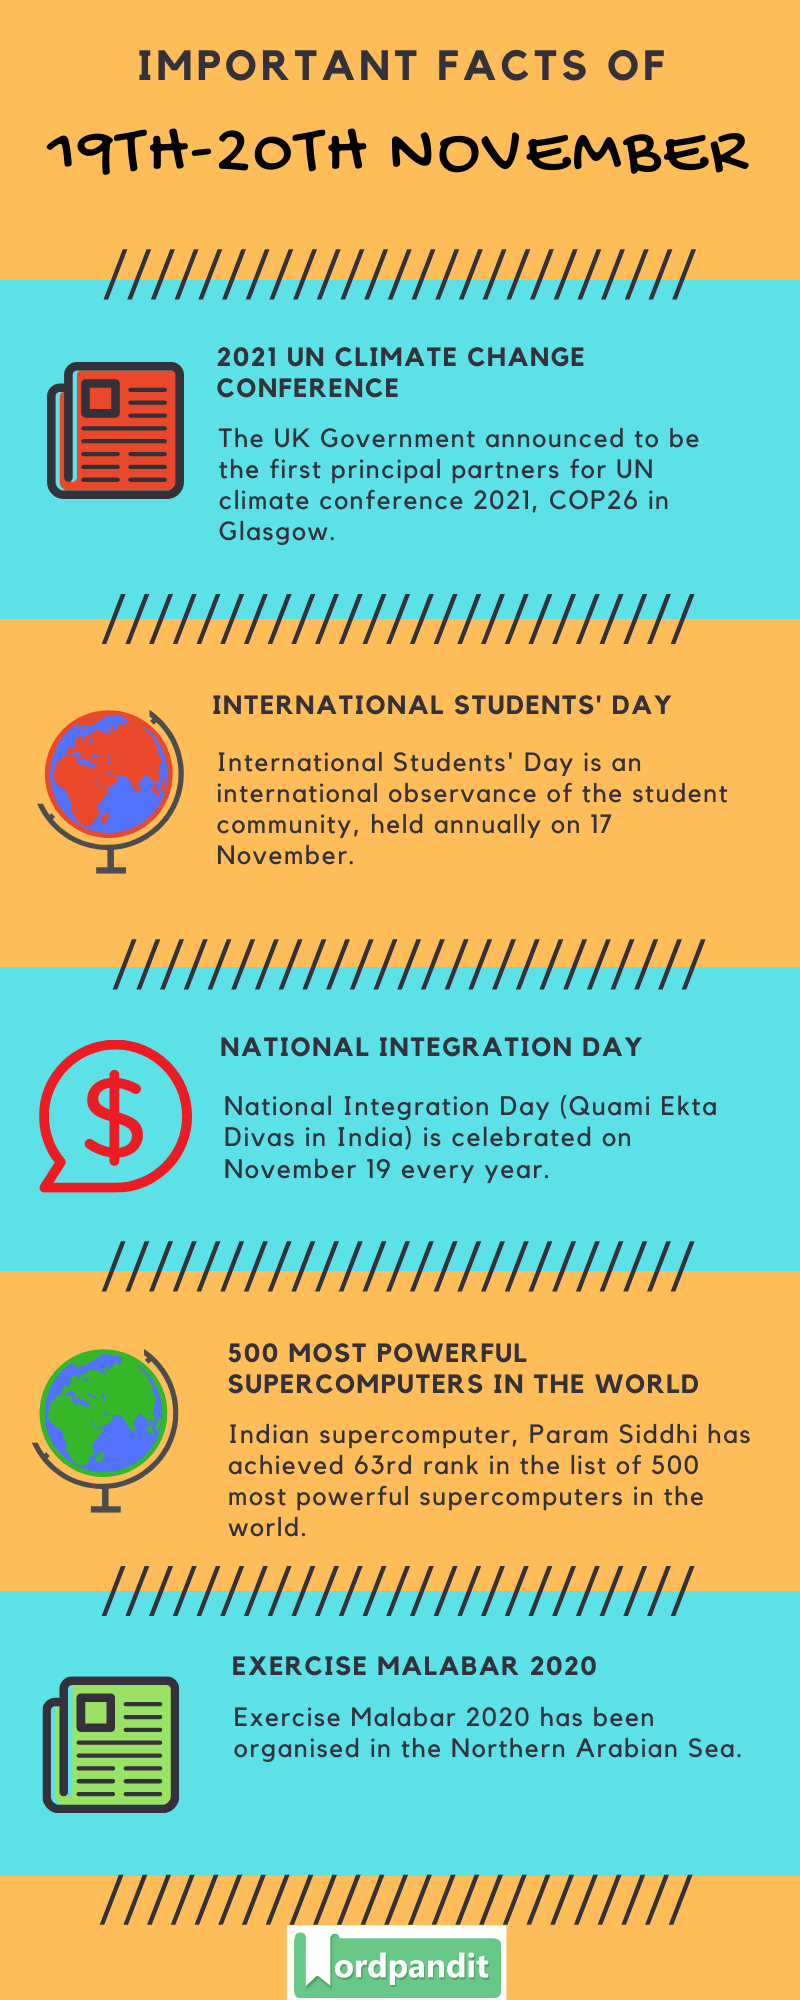 Daily Current Affairs 19th-20th November 2020 Current Affairs Quiz 19th-20th November 2020 Current Affairs Infographic